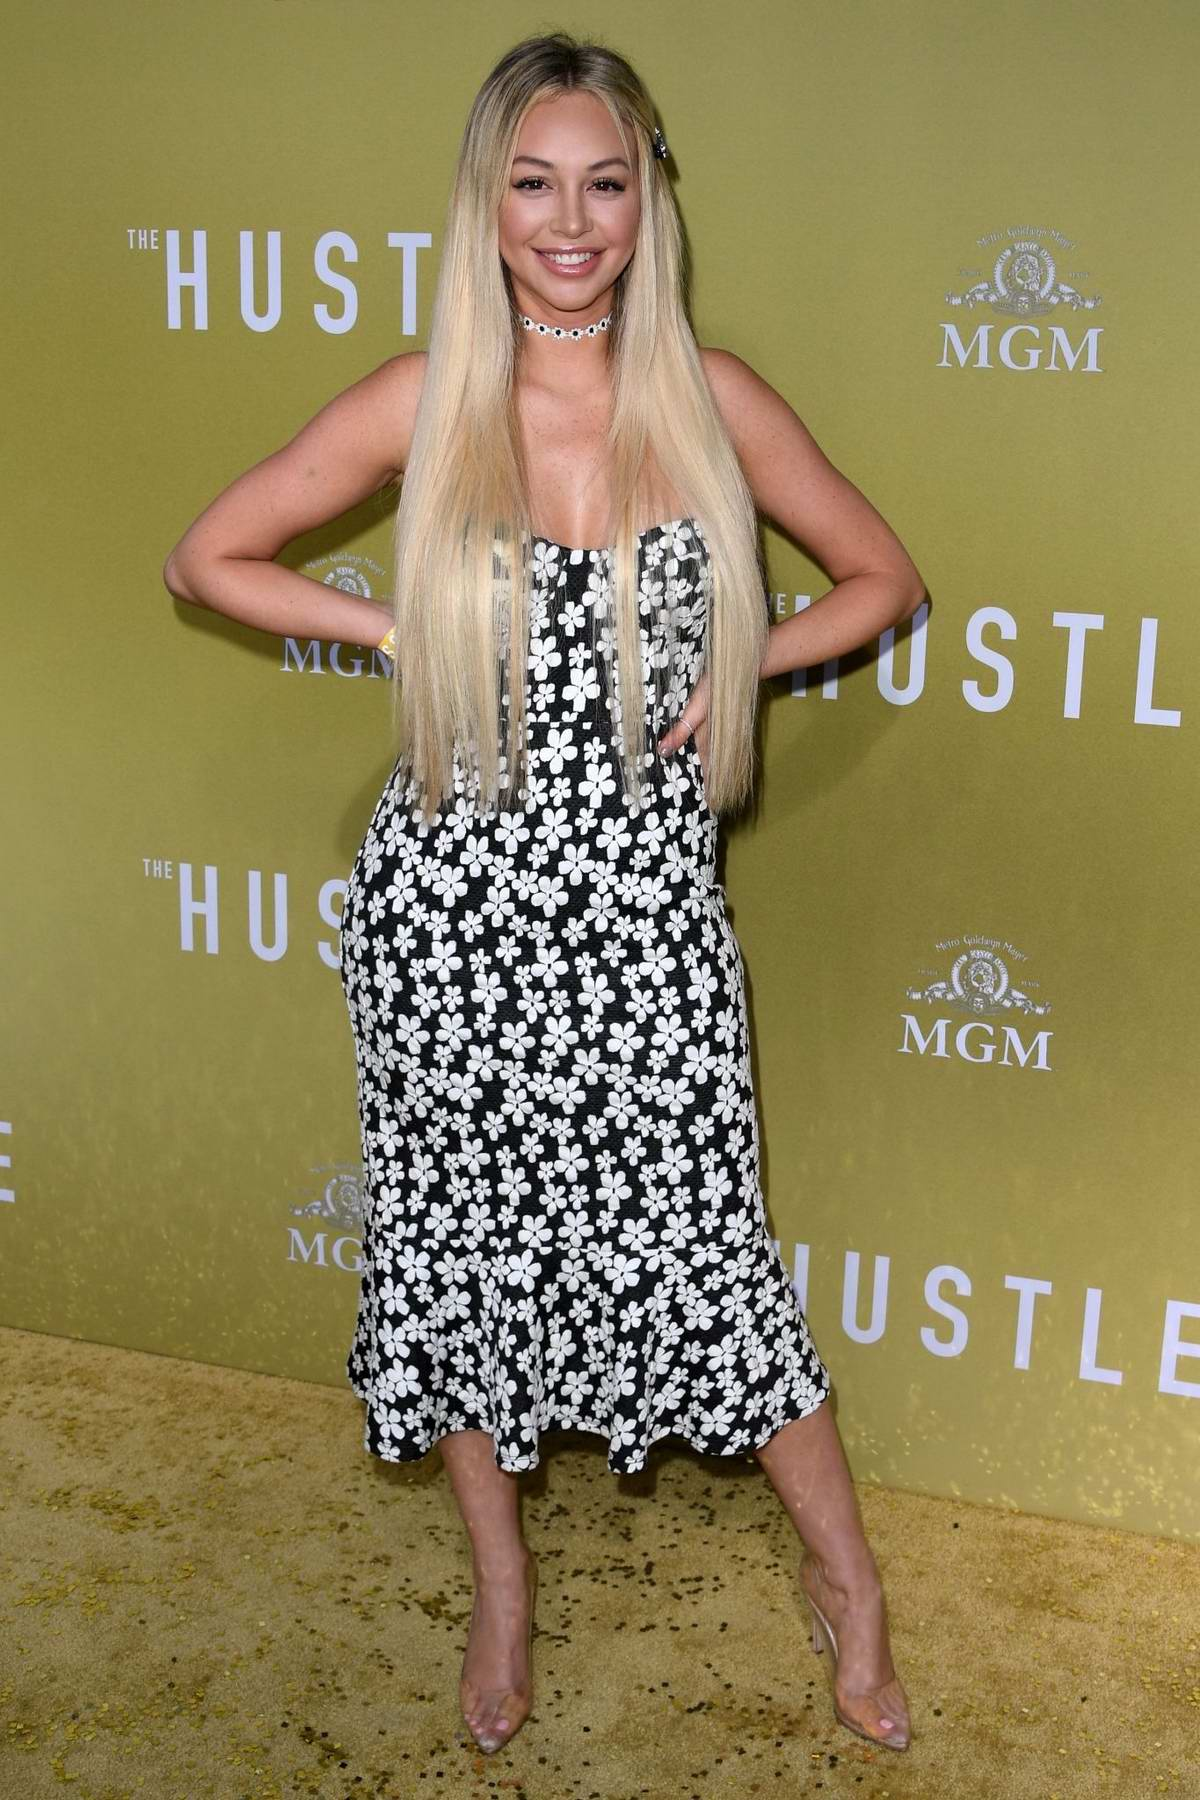 Corinne Olympios attends the premiere of 'The Hustle' at Arclight Cinerama Dome in Hollywood, California